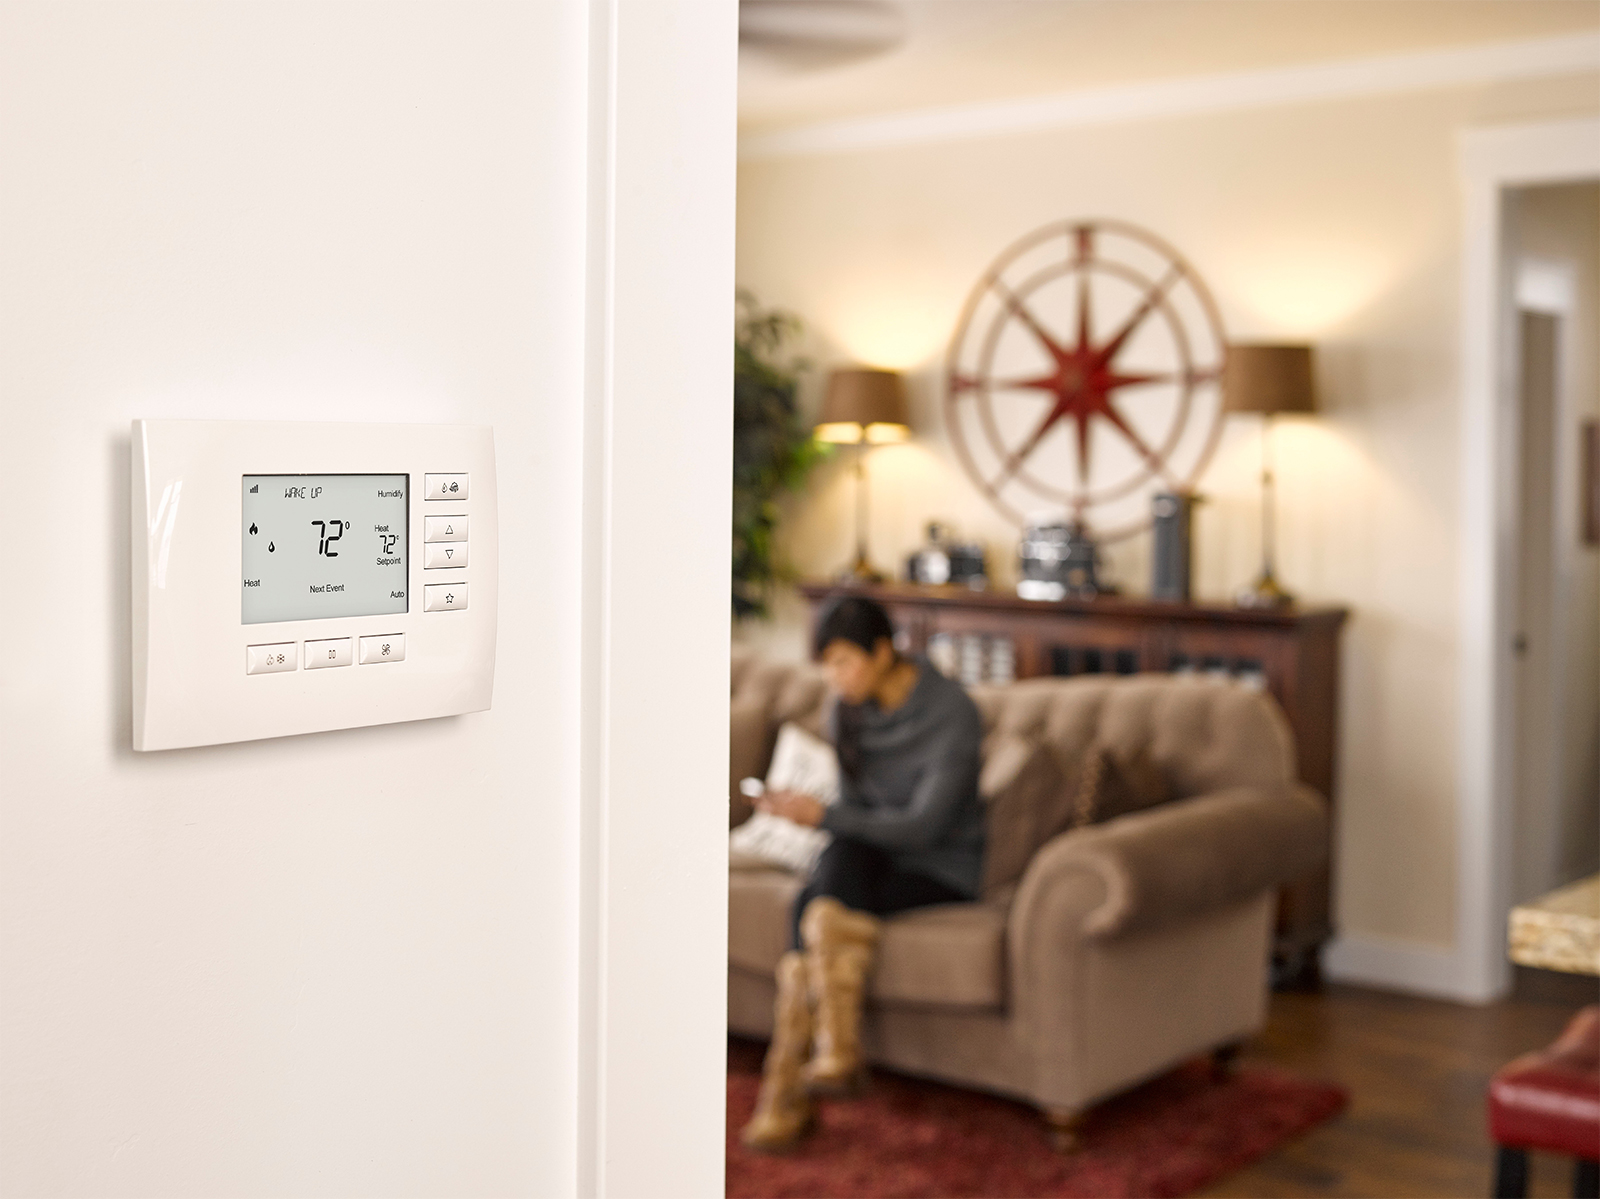 How to Use a Home Energy Management System